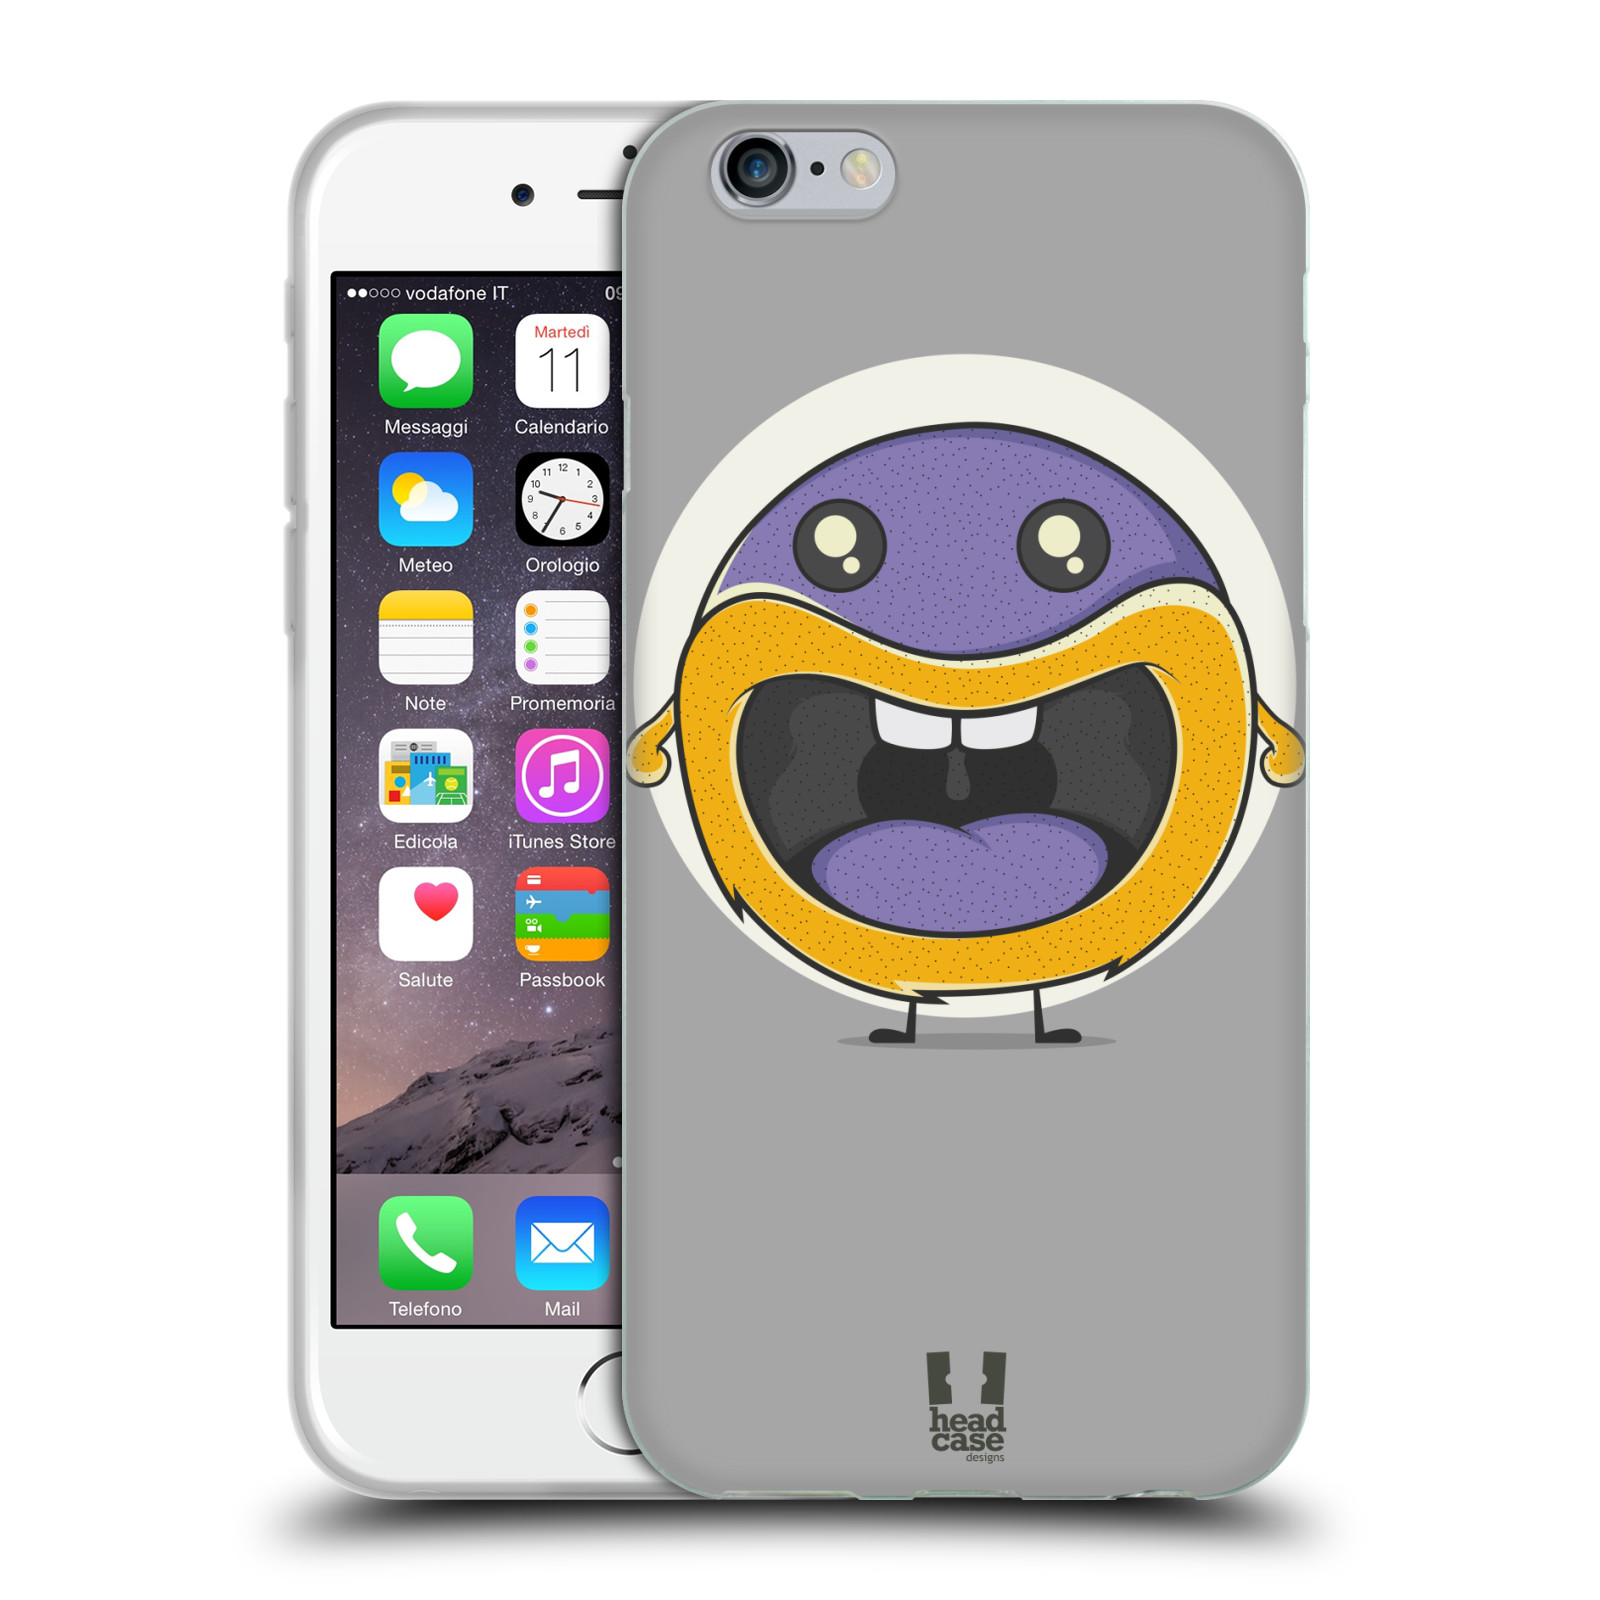 HEAD-CASE-DESIGNS-ALPHABET-MONSTER-SOFT-GEL-CASE-FOR-APPLE-iPHONE-PHONES